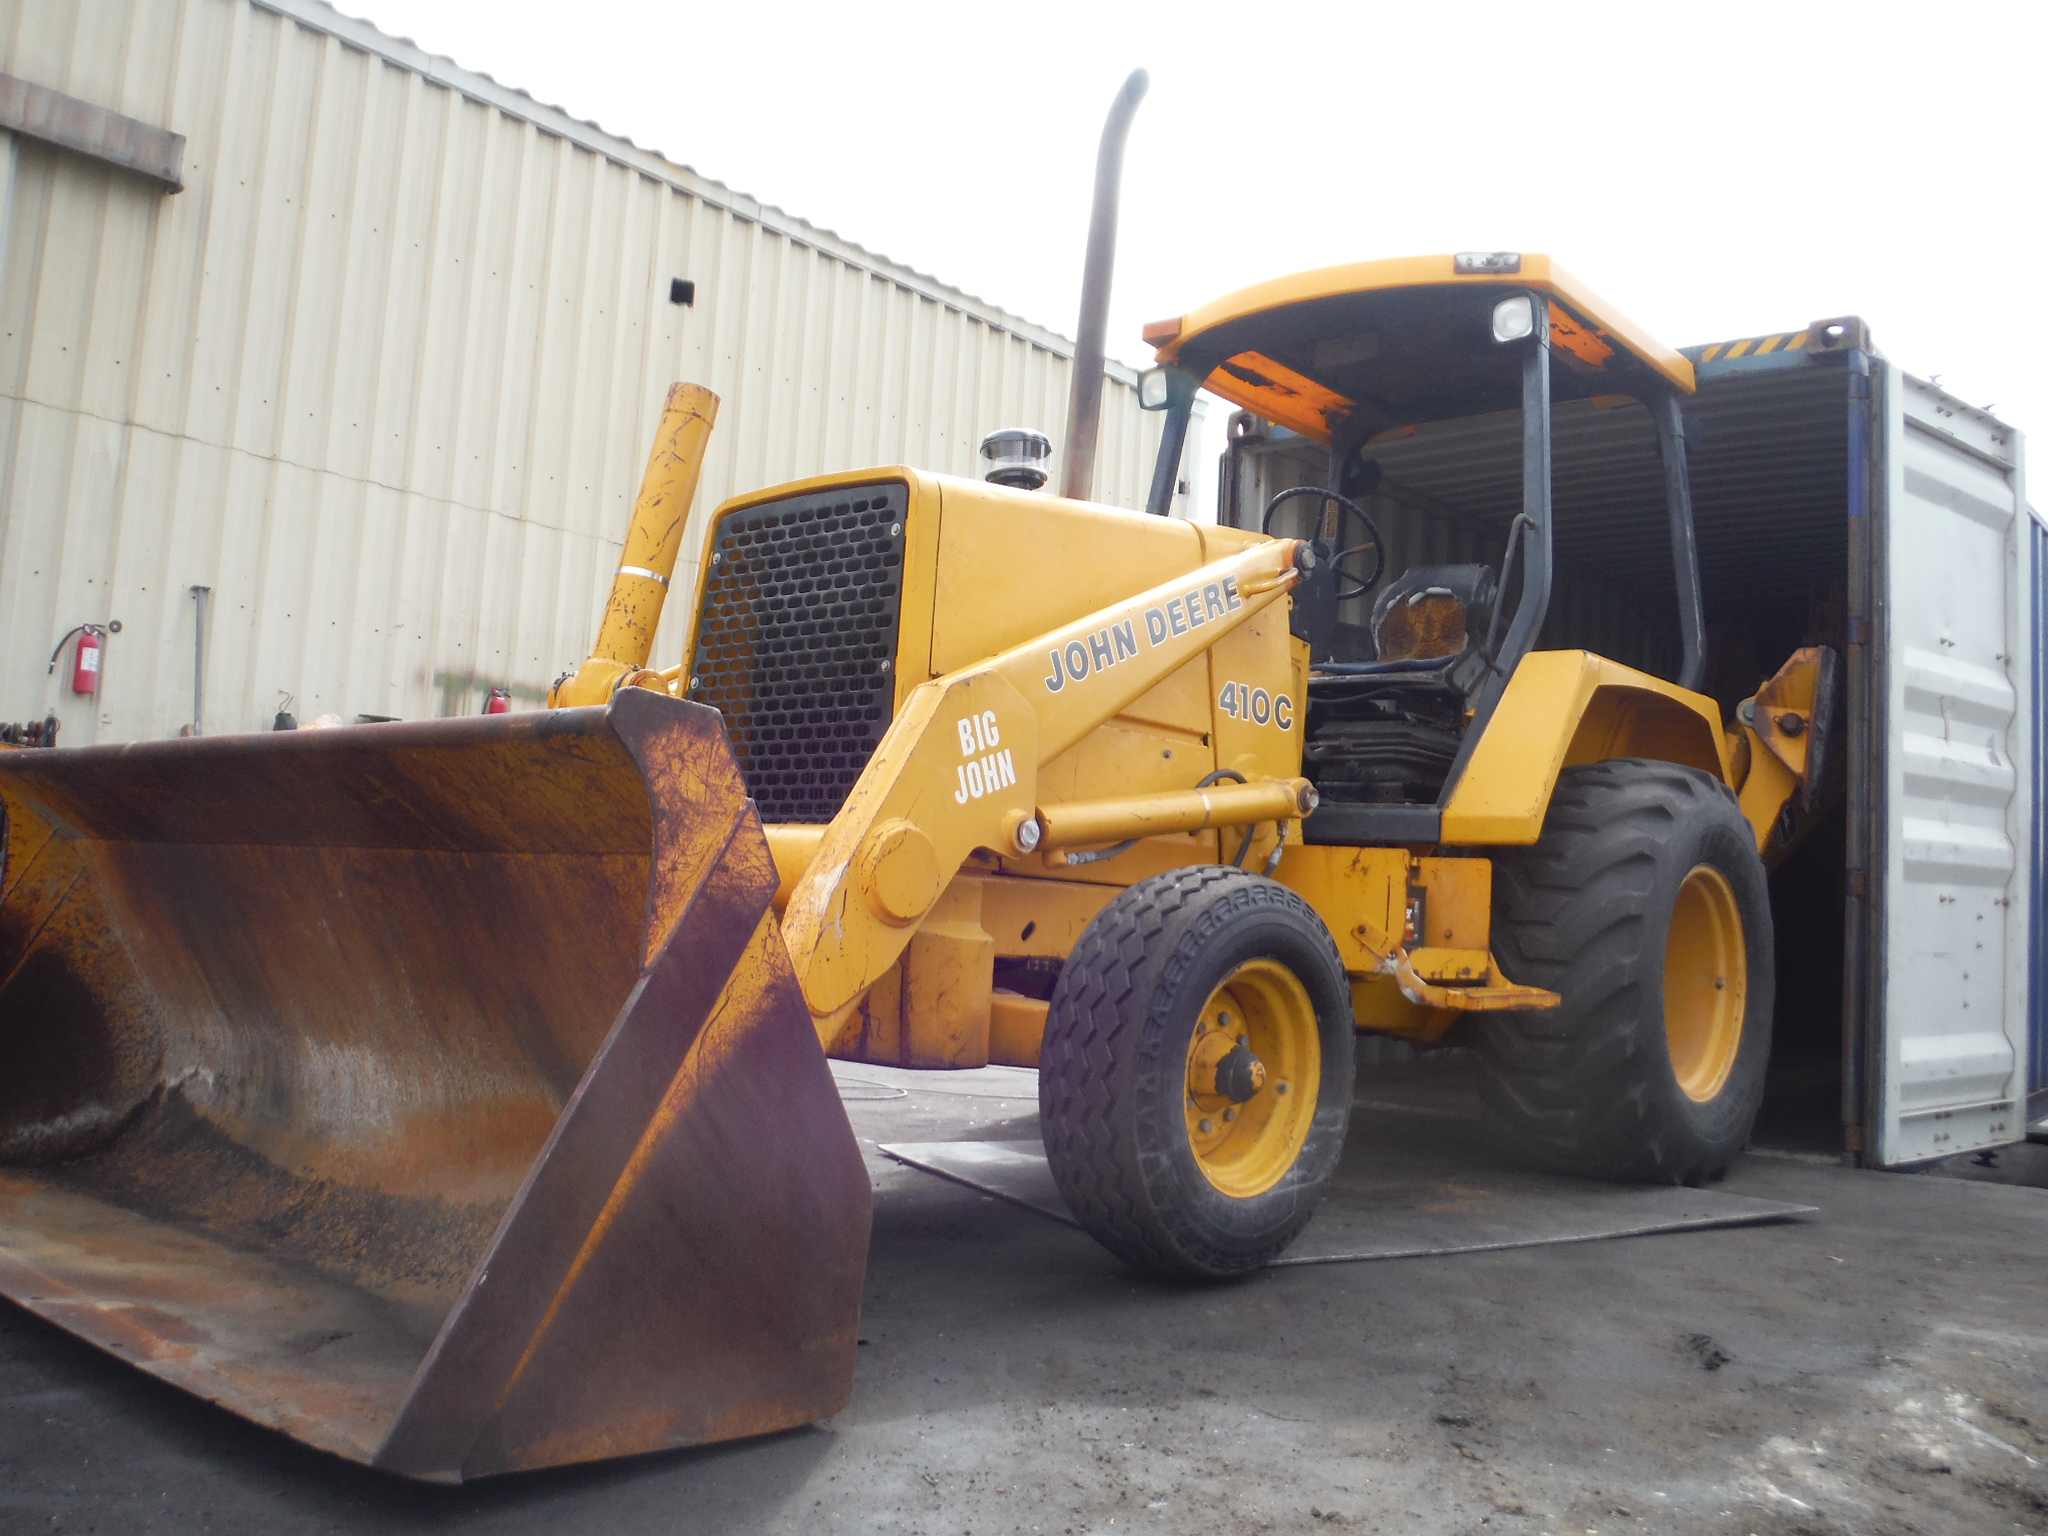 backhoes-john-deere-410c-vincent-1-2-